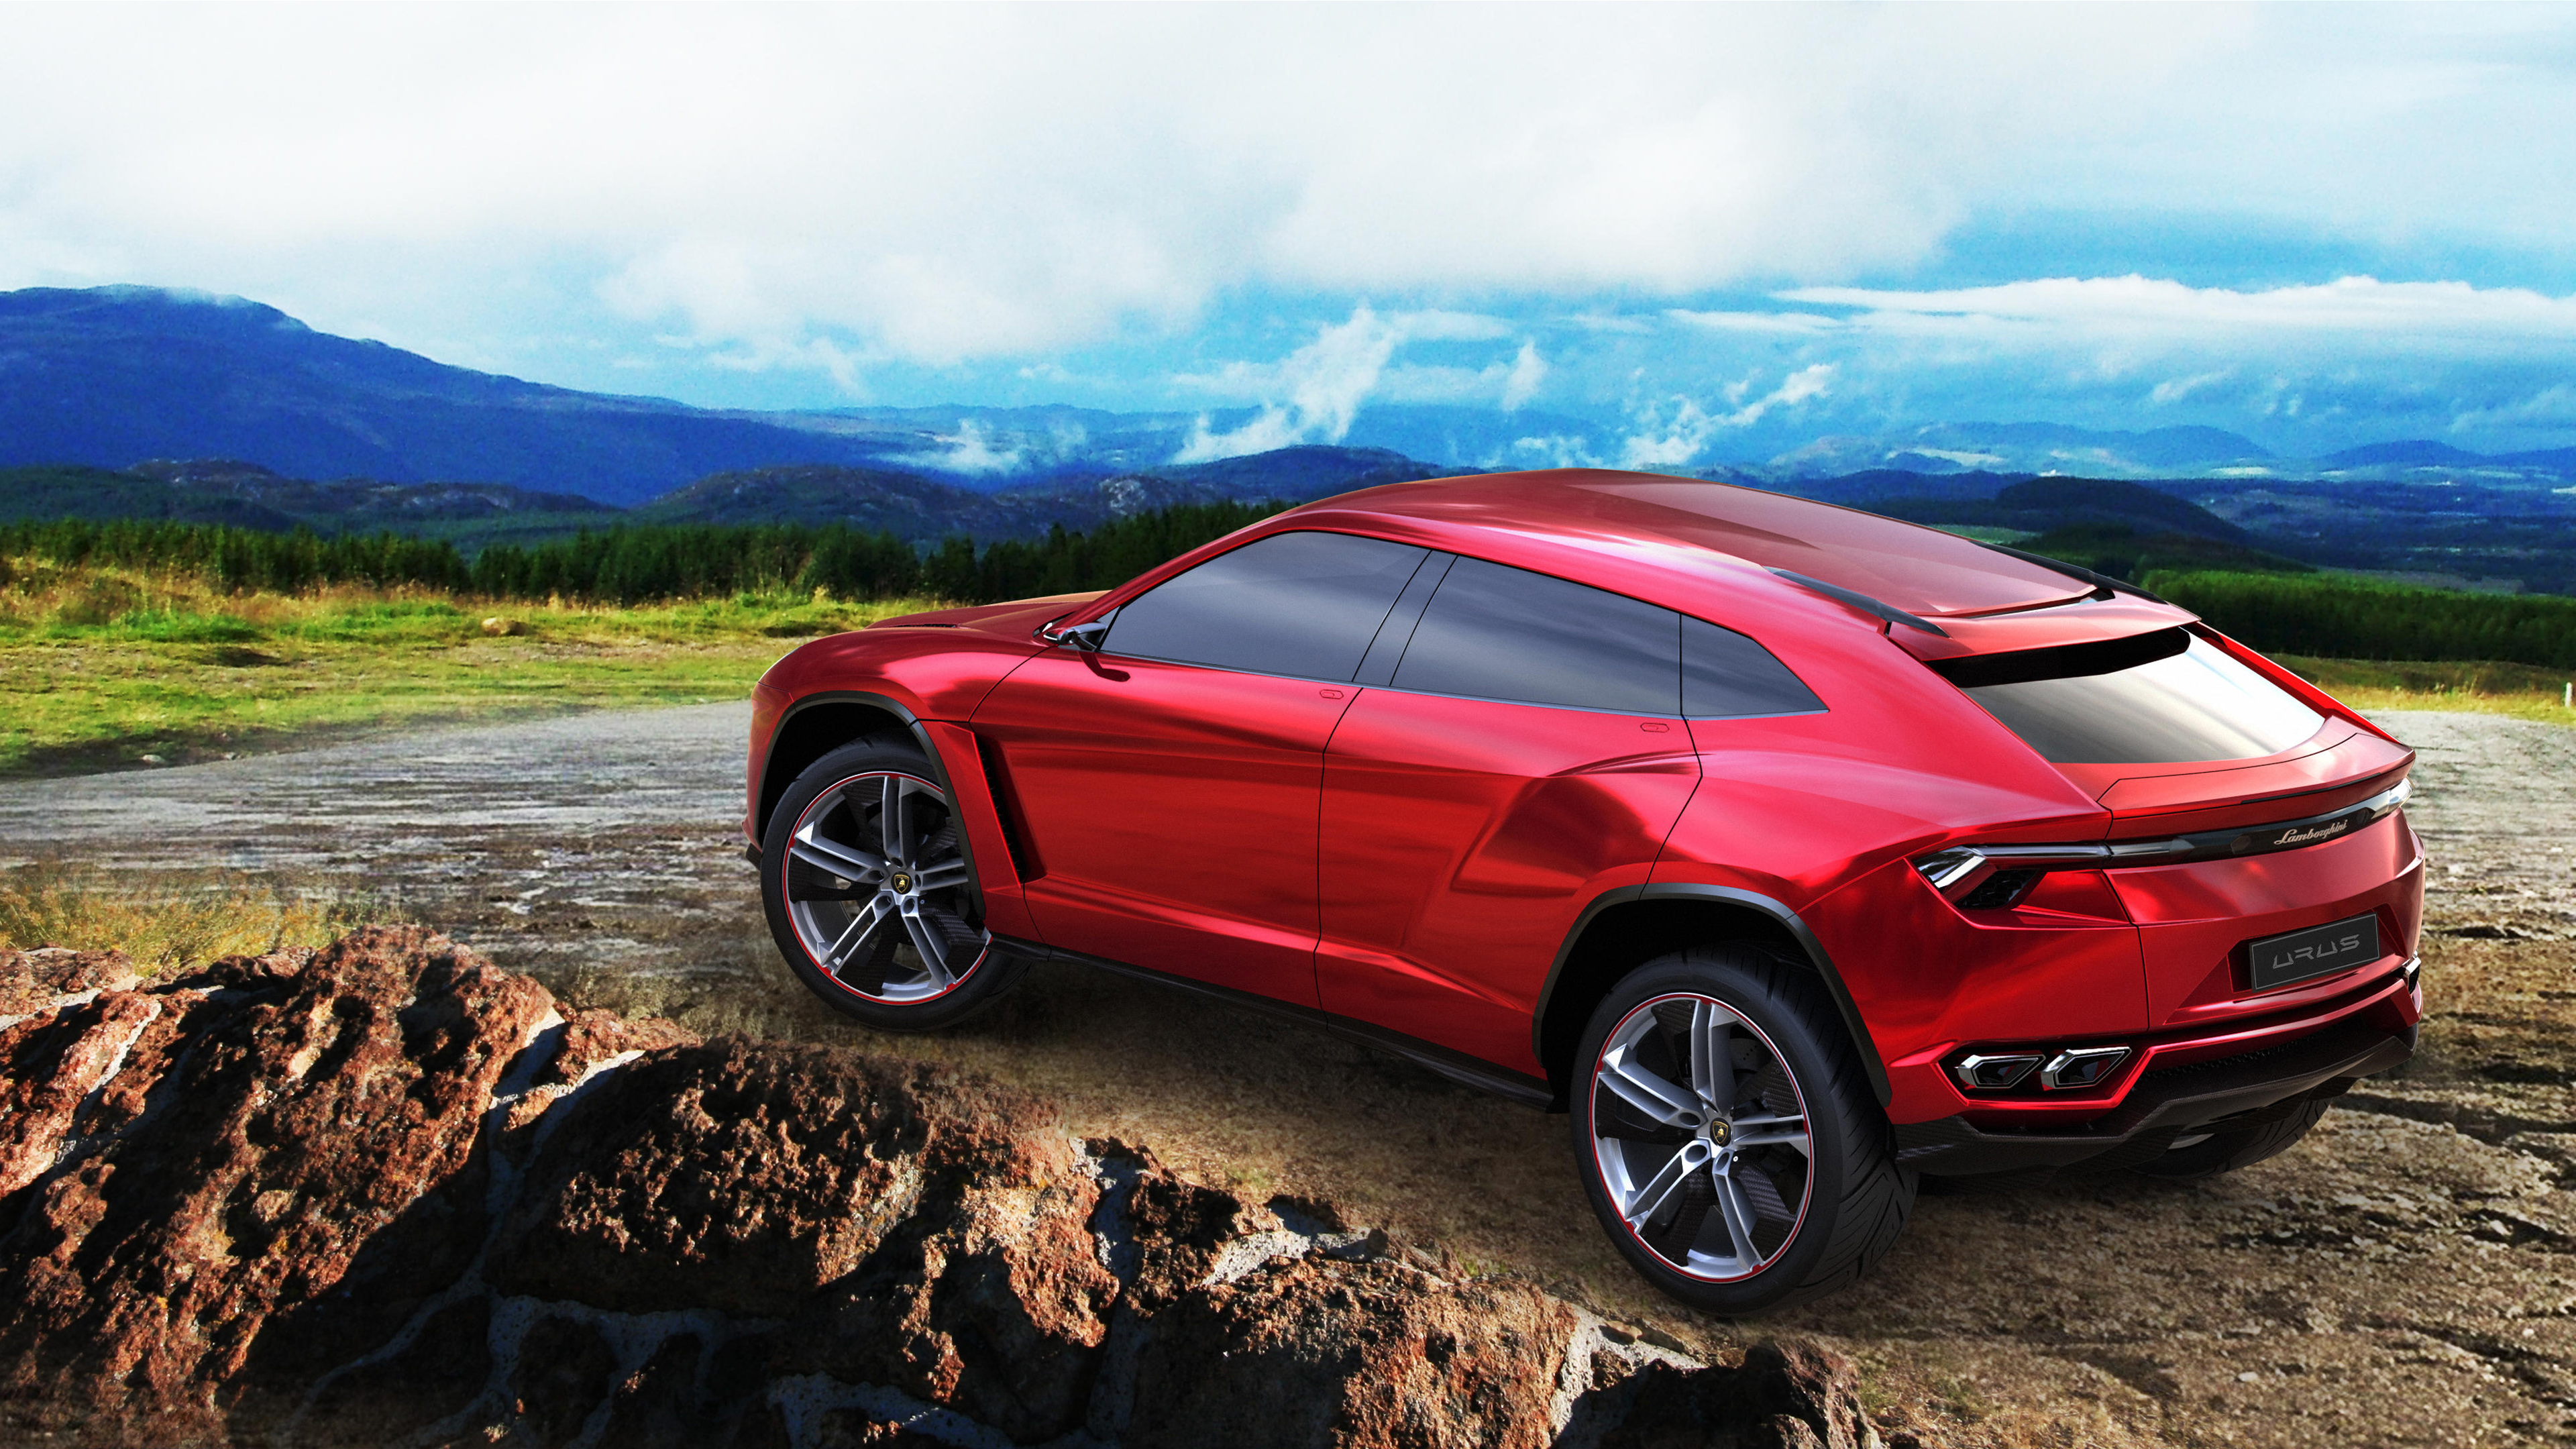 Lamborghini Urus 4k Ultra Hd Wallpaper Background Image